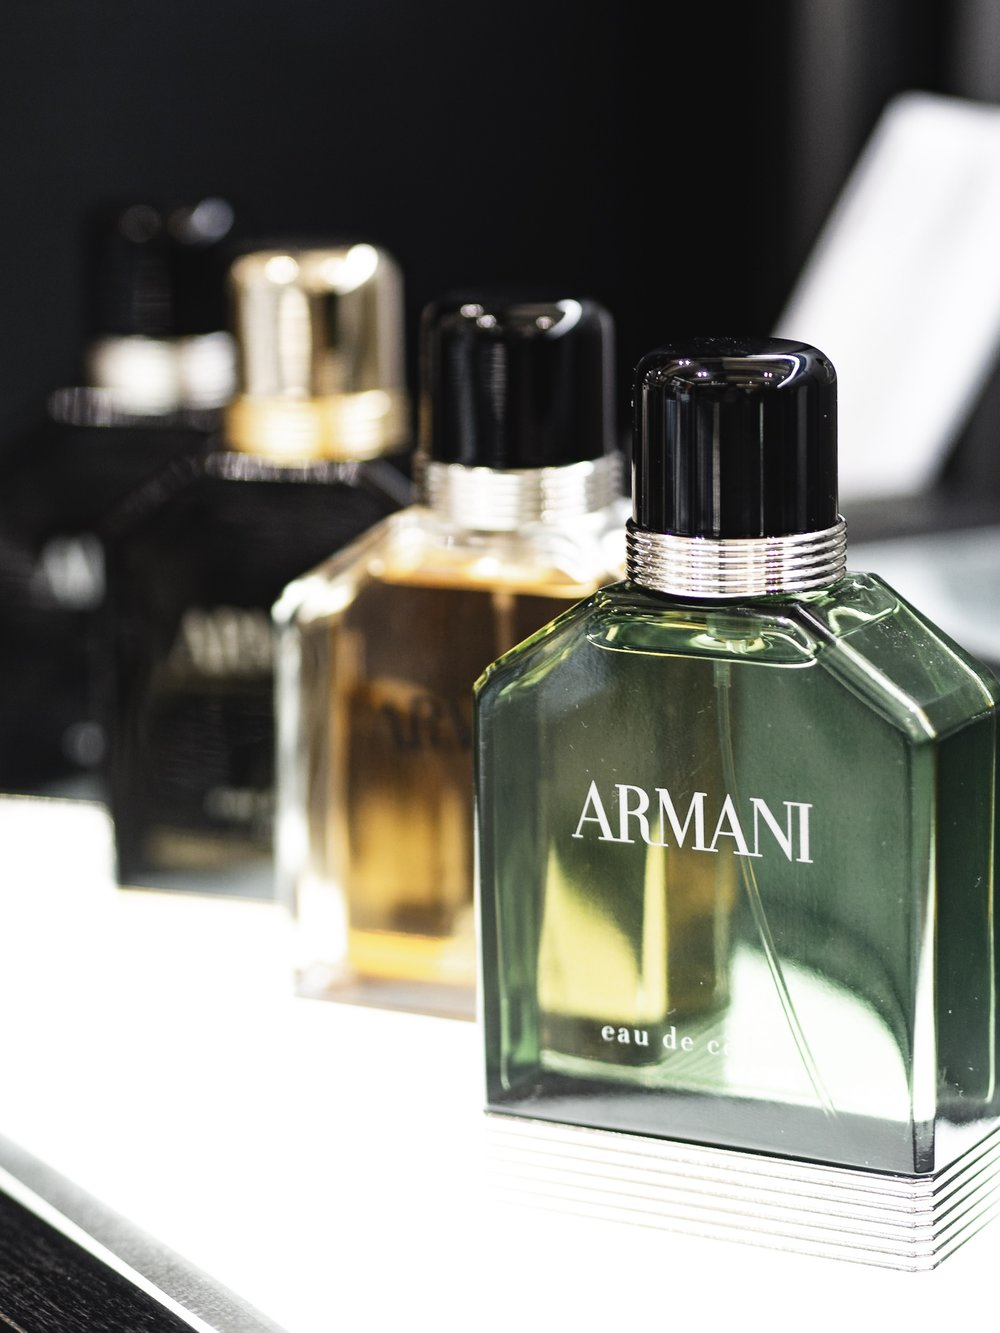 Heathrow Airport World Duty Free Fragrance Armani